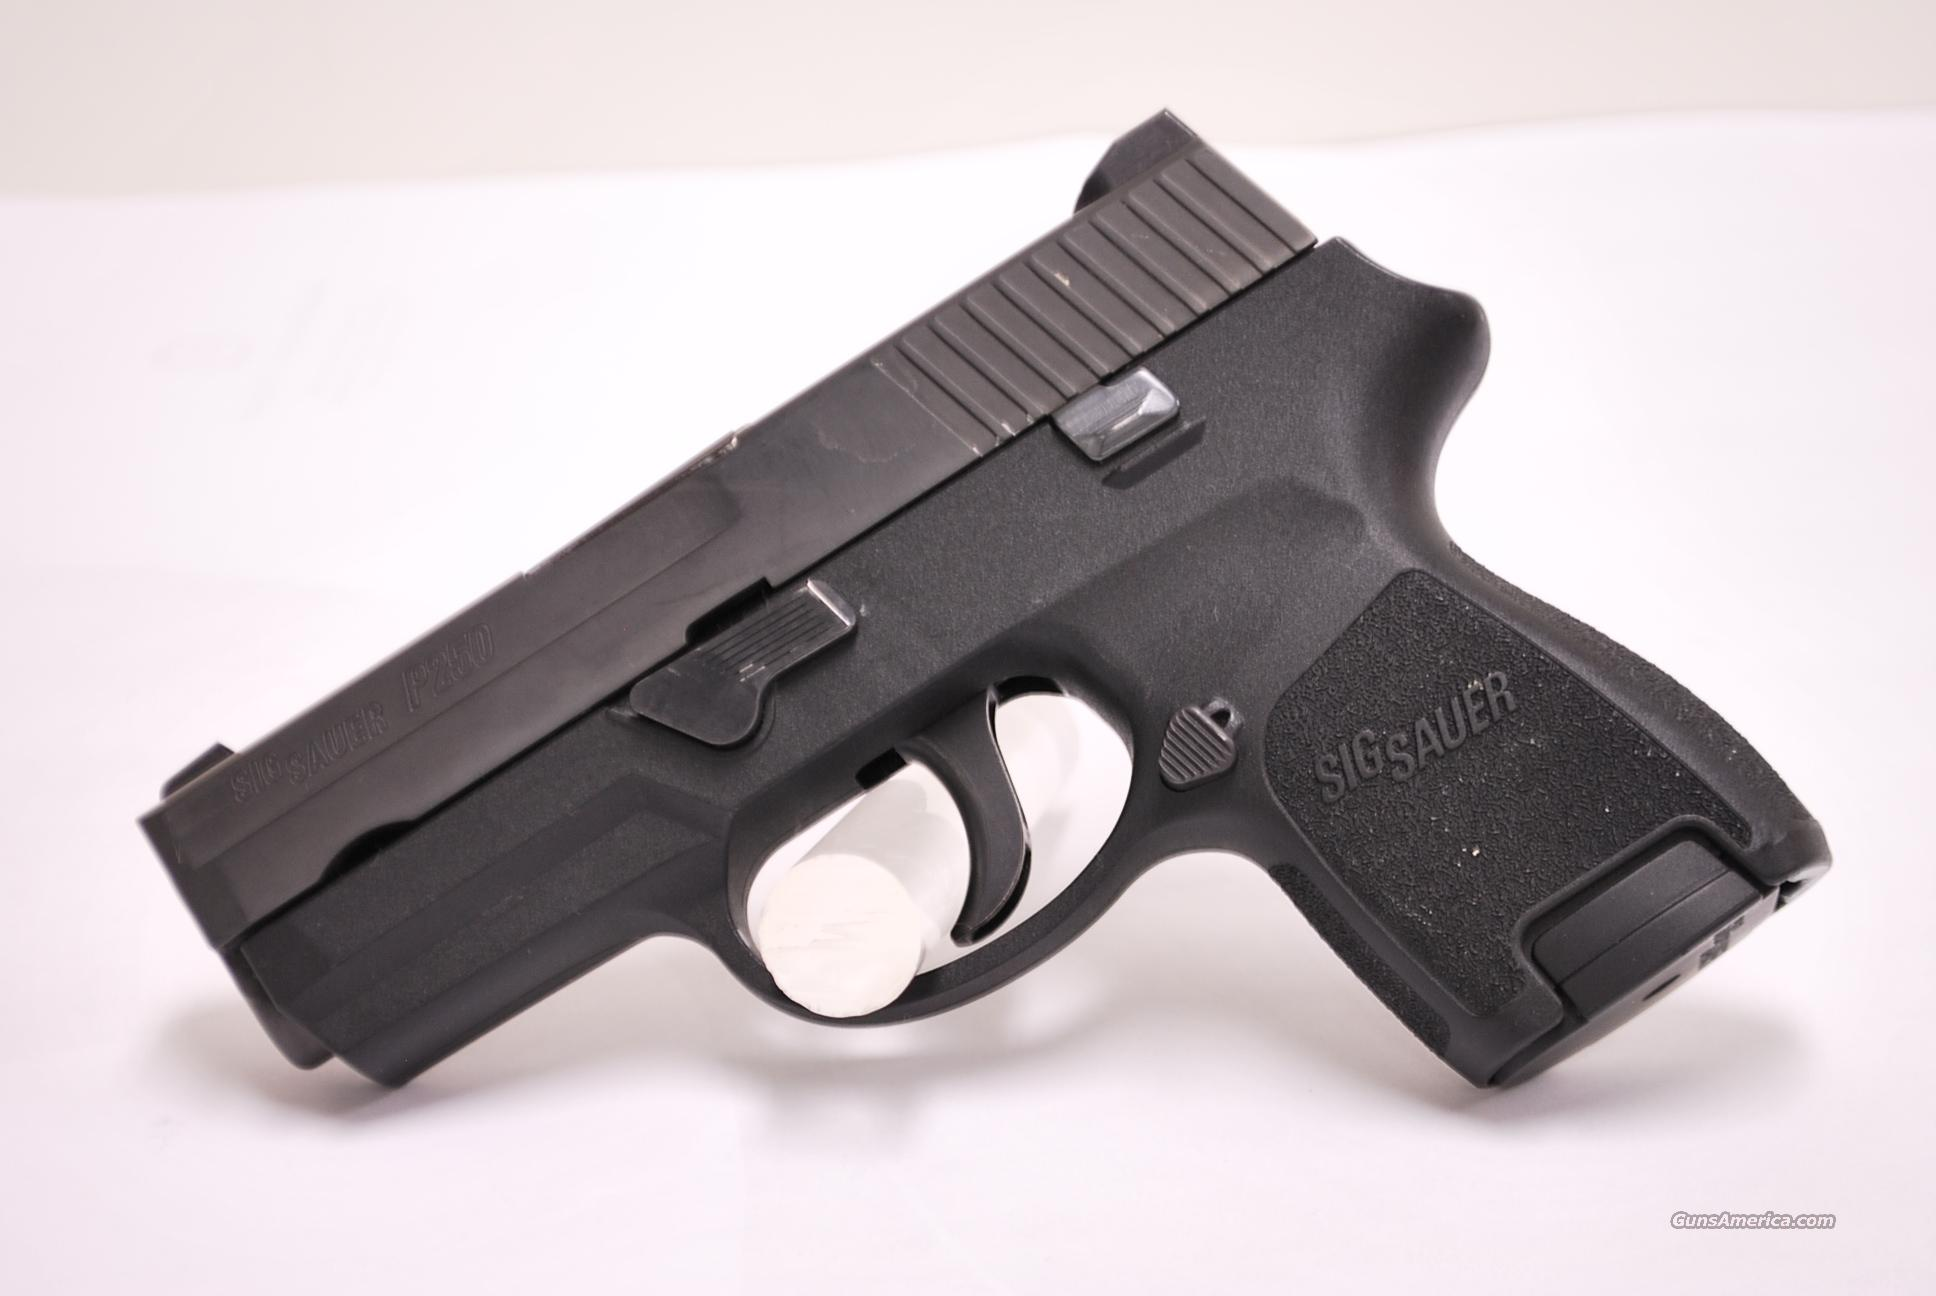 SIG SAUER P250 SUBCOMPACT 40 S&W USED 250  Guns > Pistols > Sig - Sauer/Sigarms Pistols > P250